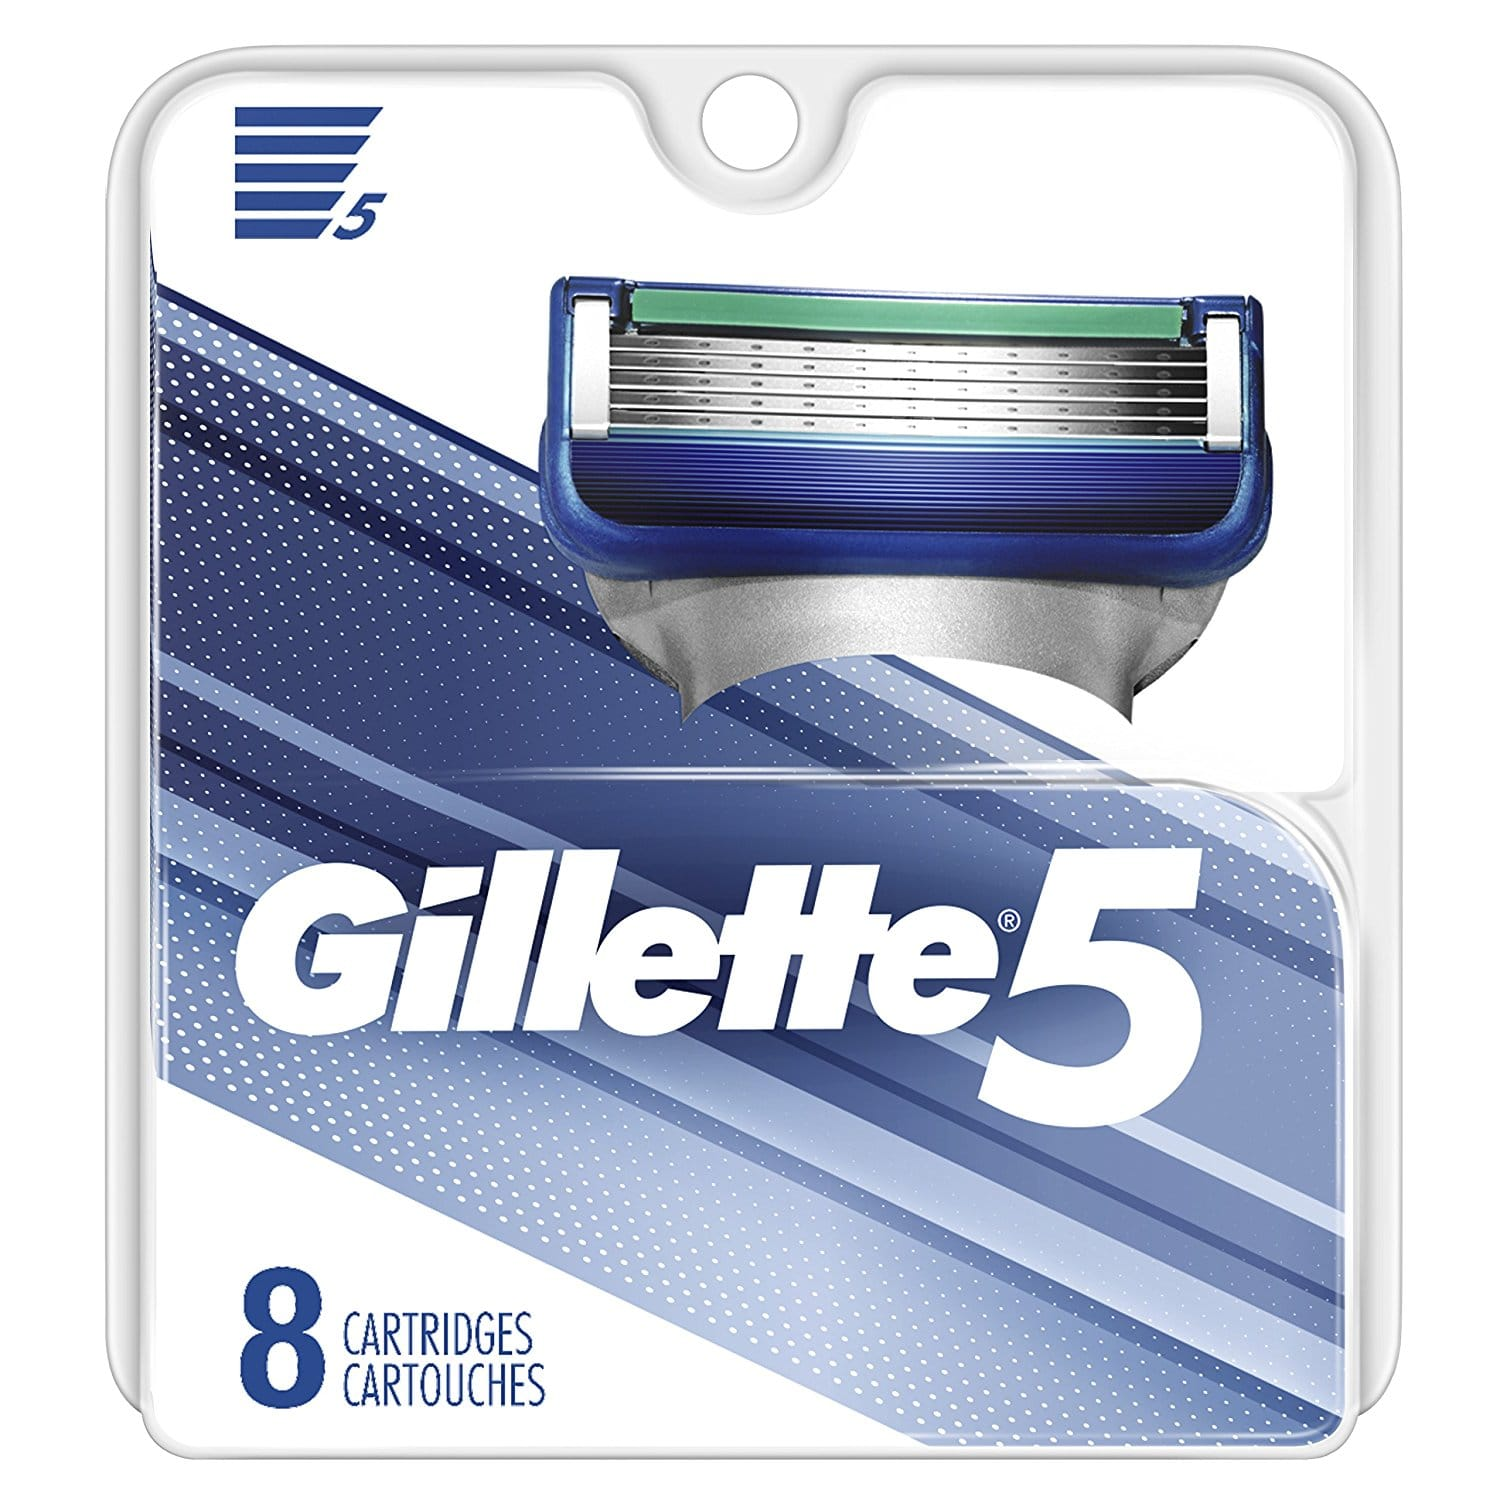 Gillette 5, 8-count, $11.99 plus FS with Amazon Prime